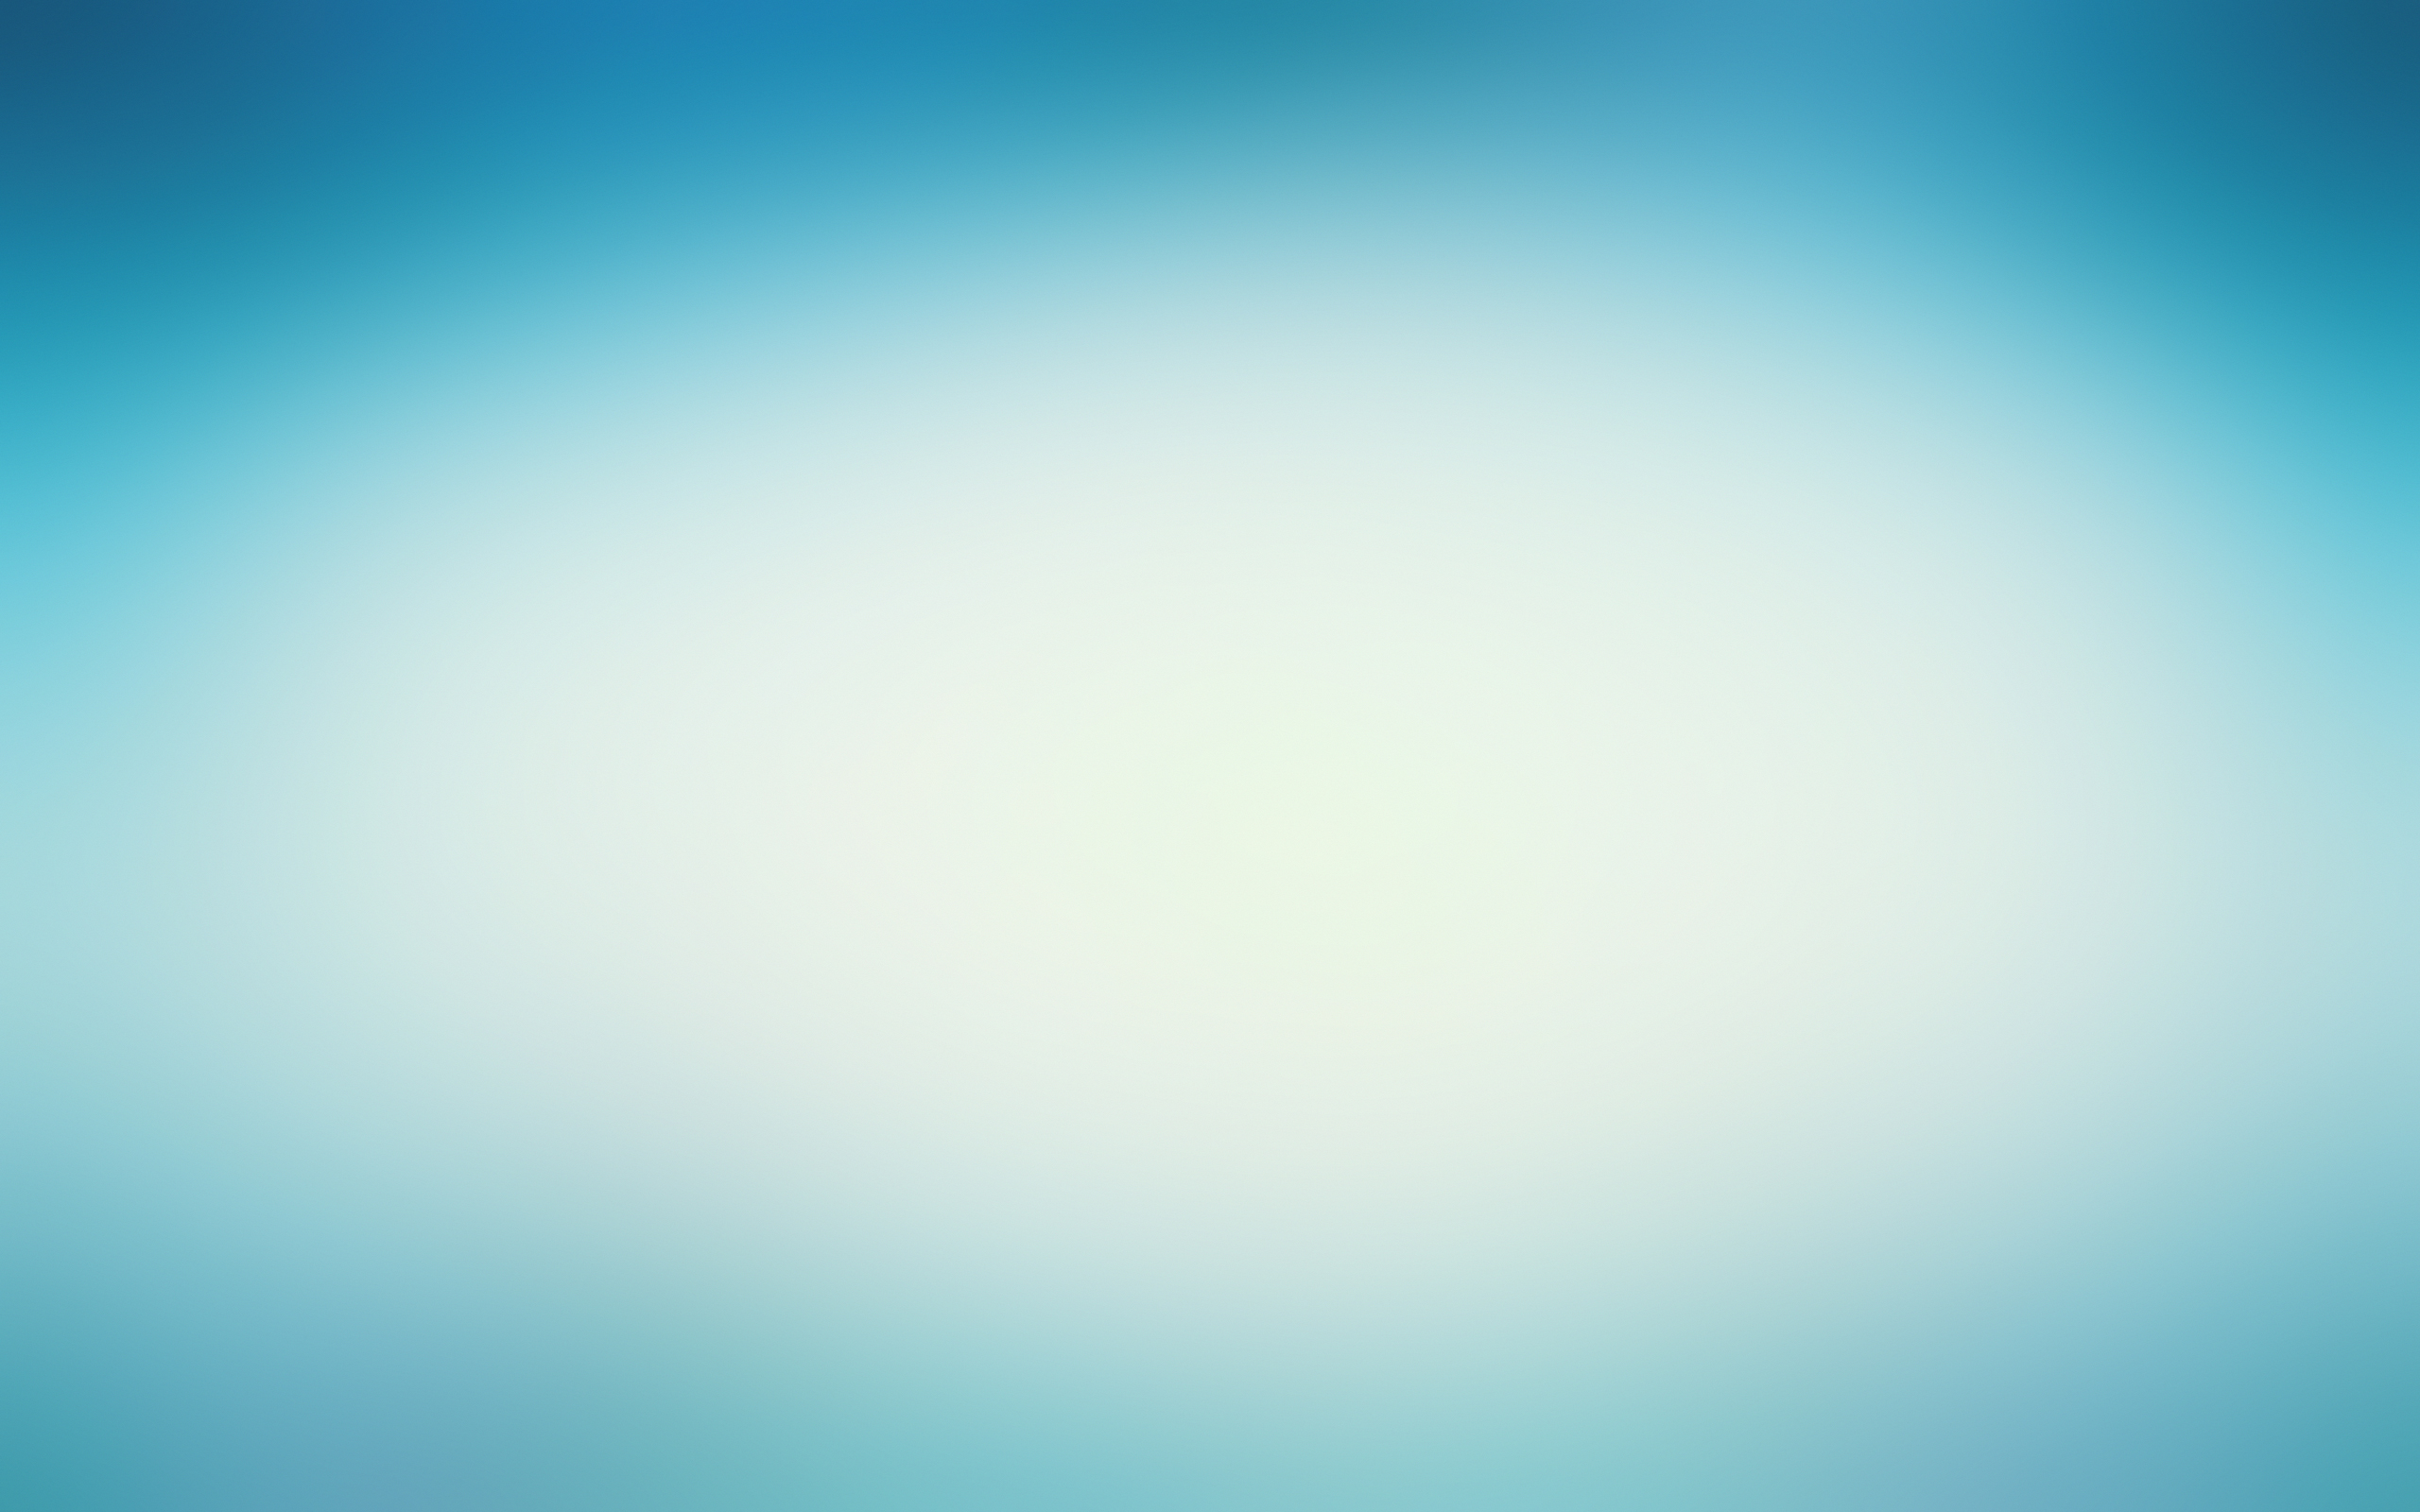 Background_blue